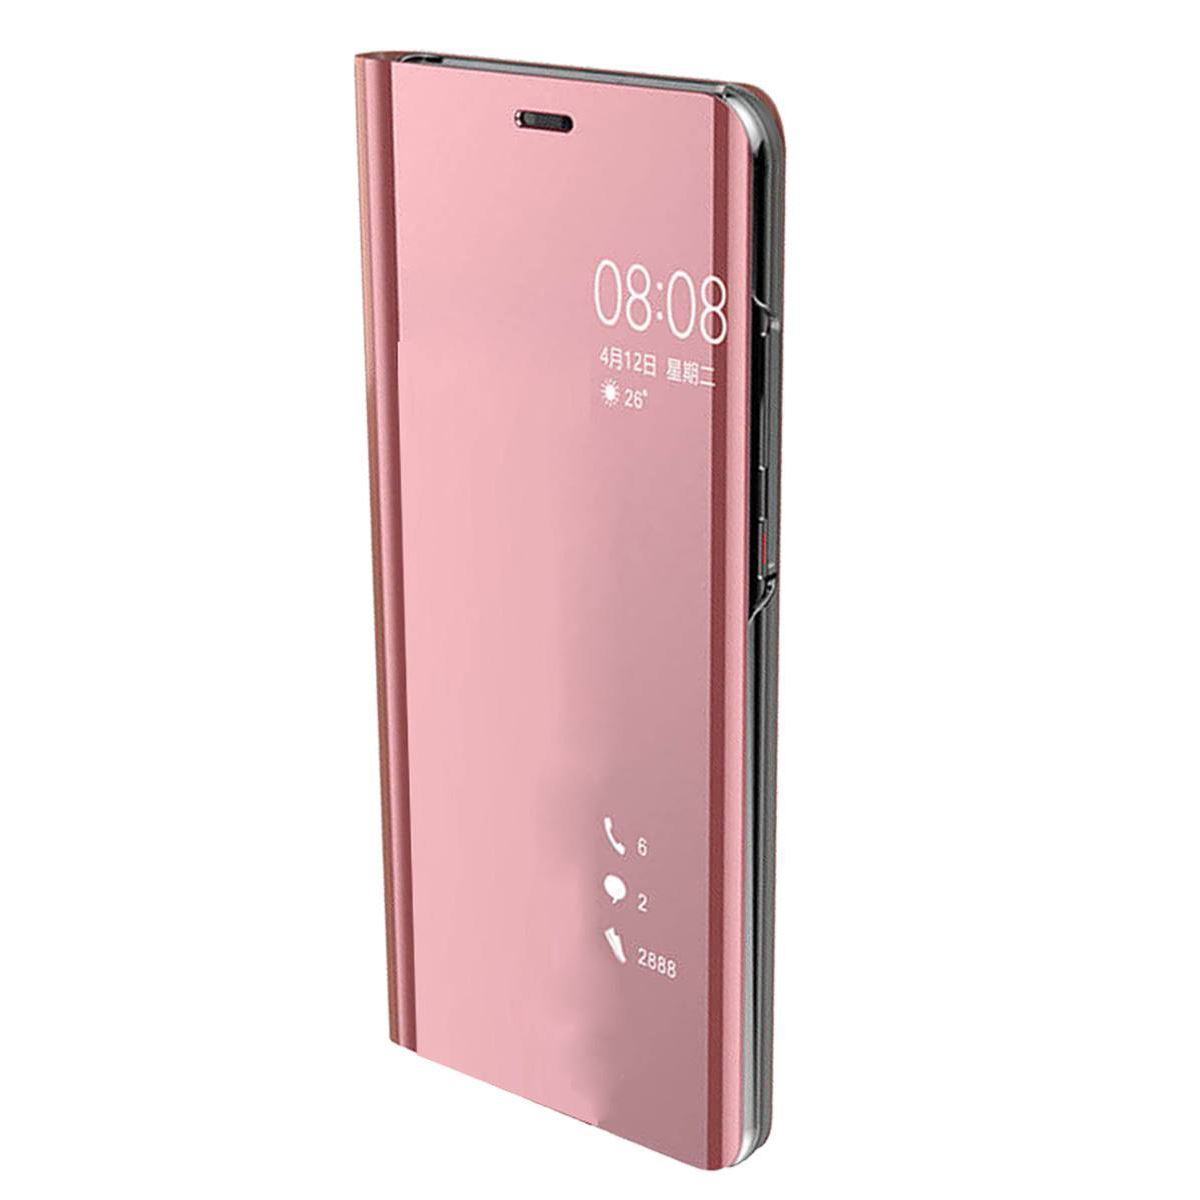 Huawei P30 Pro Case Smart View Mirror Flip Stand Cover - Rose Gold